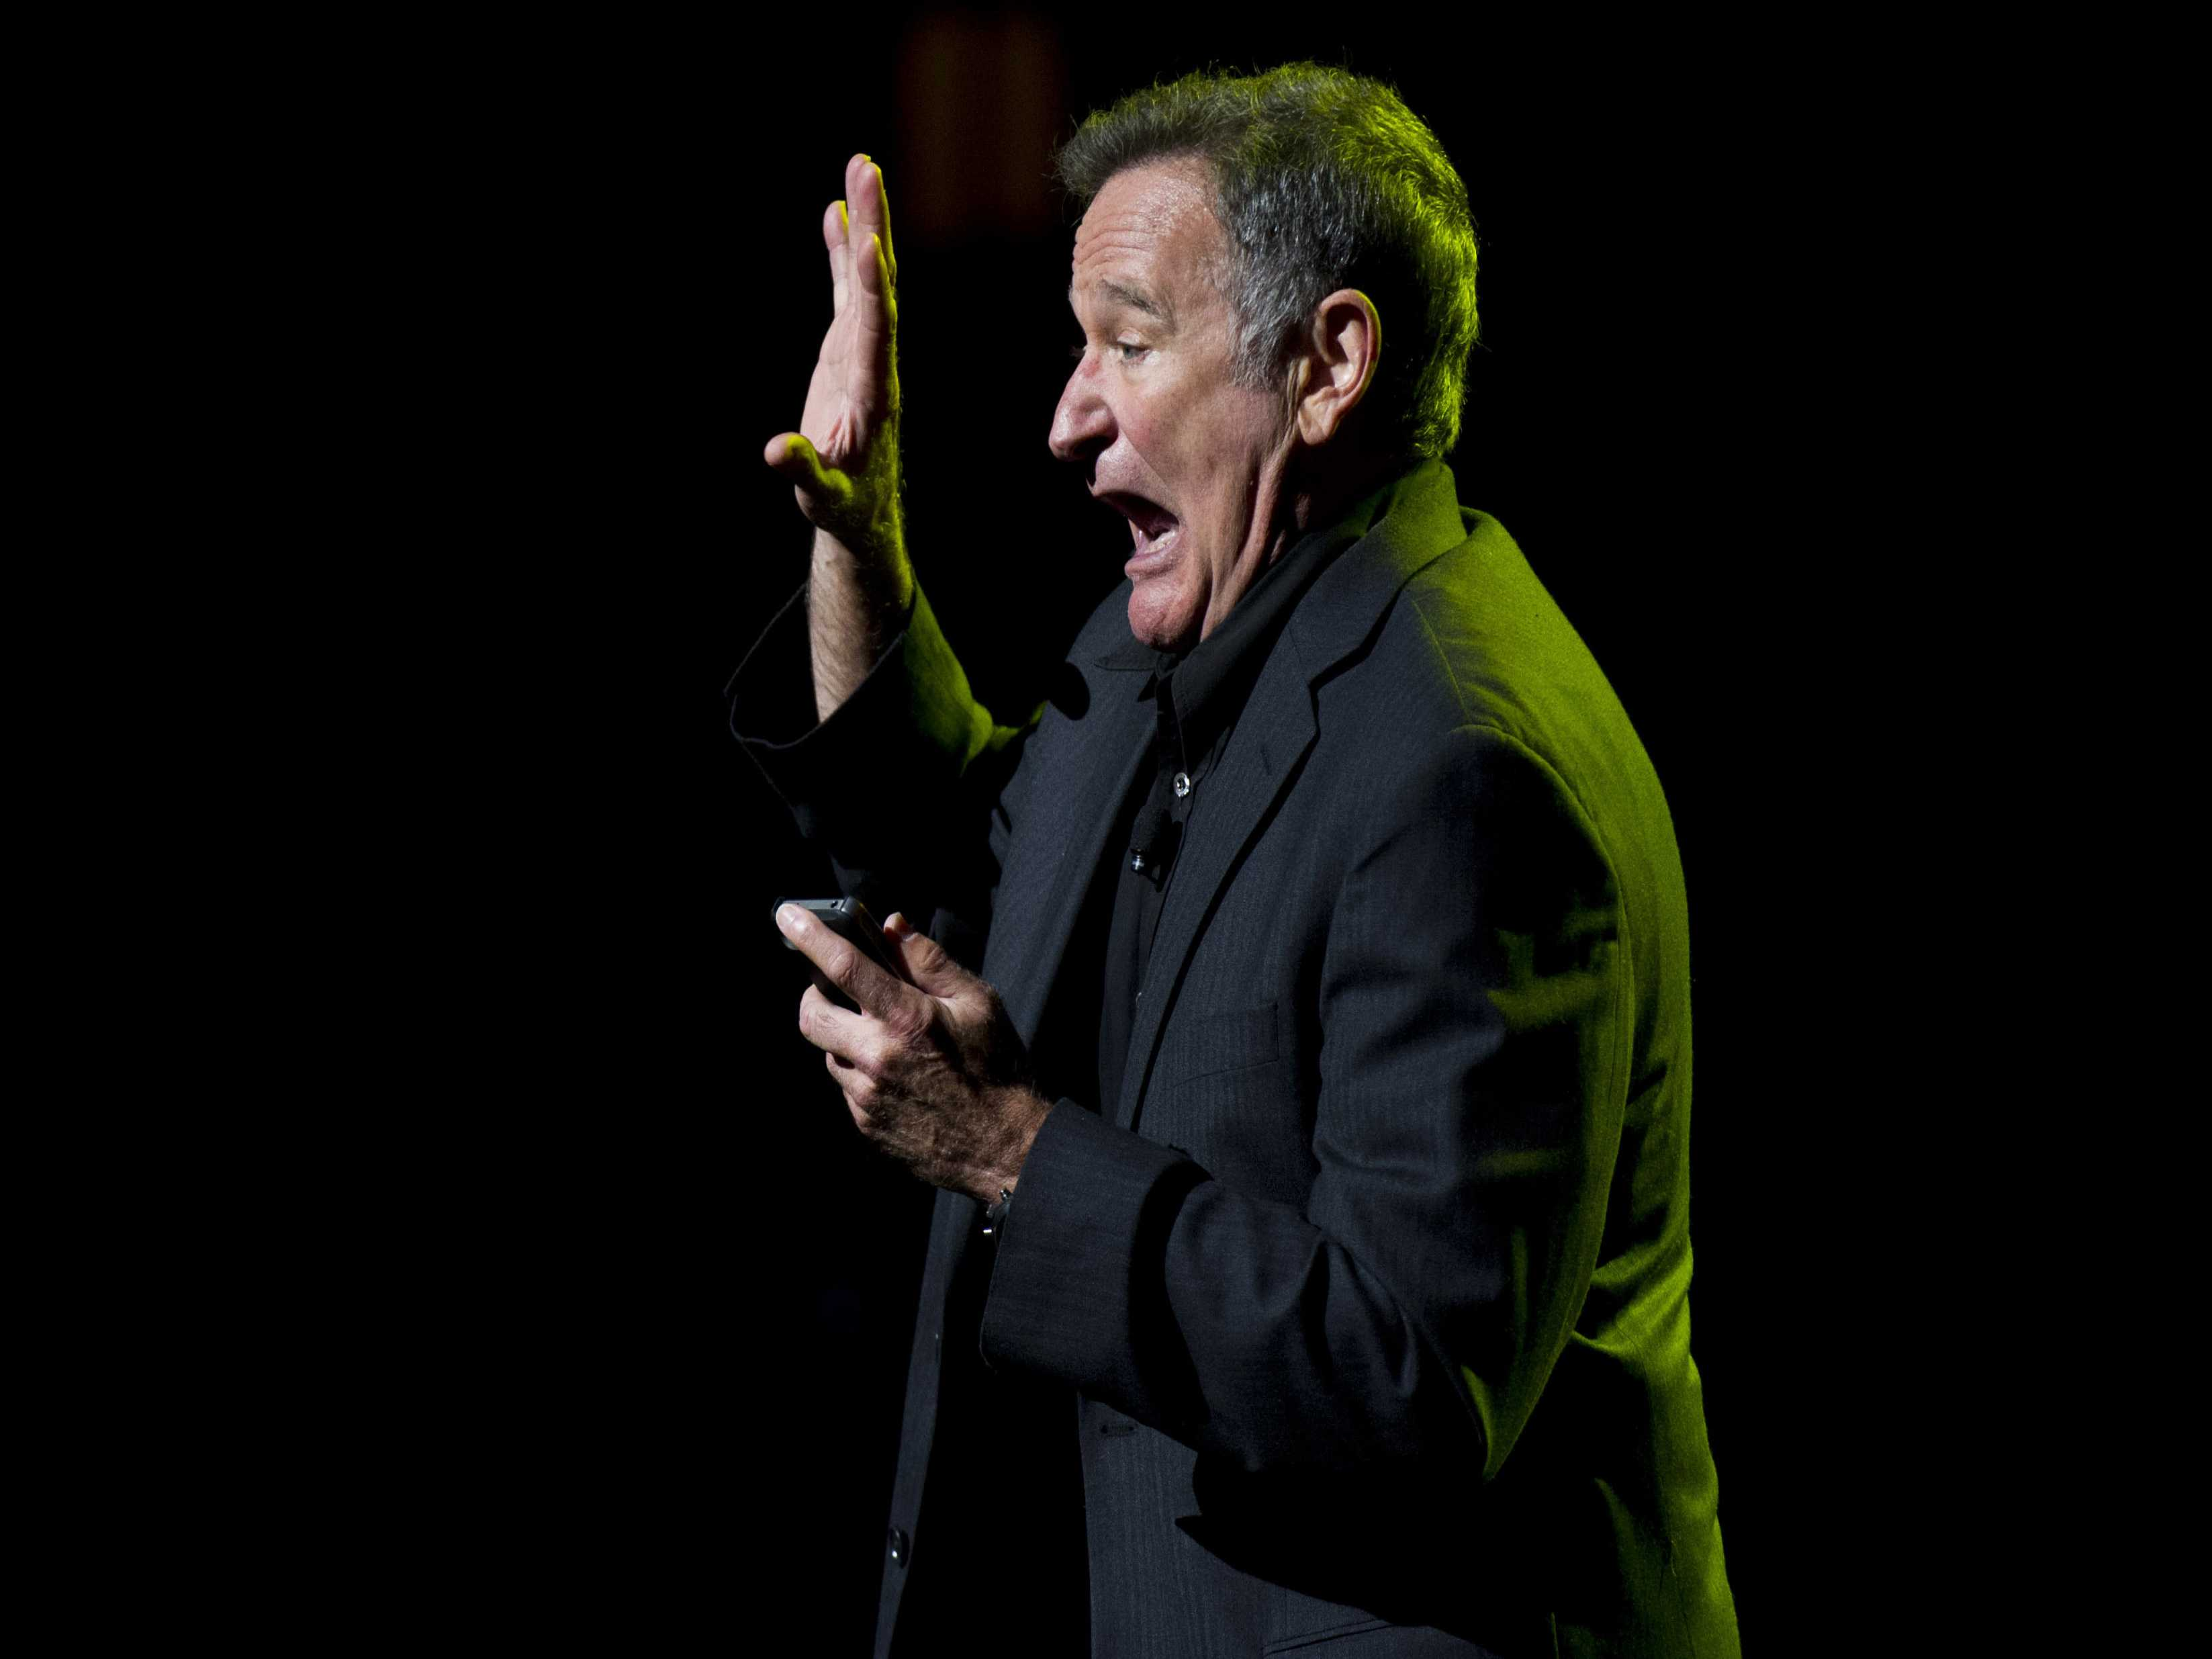 Robin Williams Speaks for Himself in New HBO Documentary